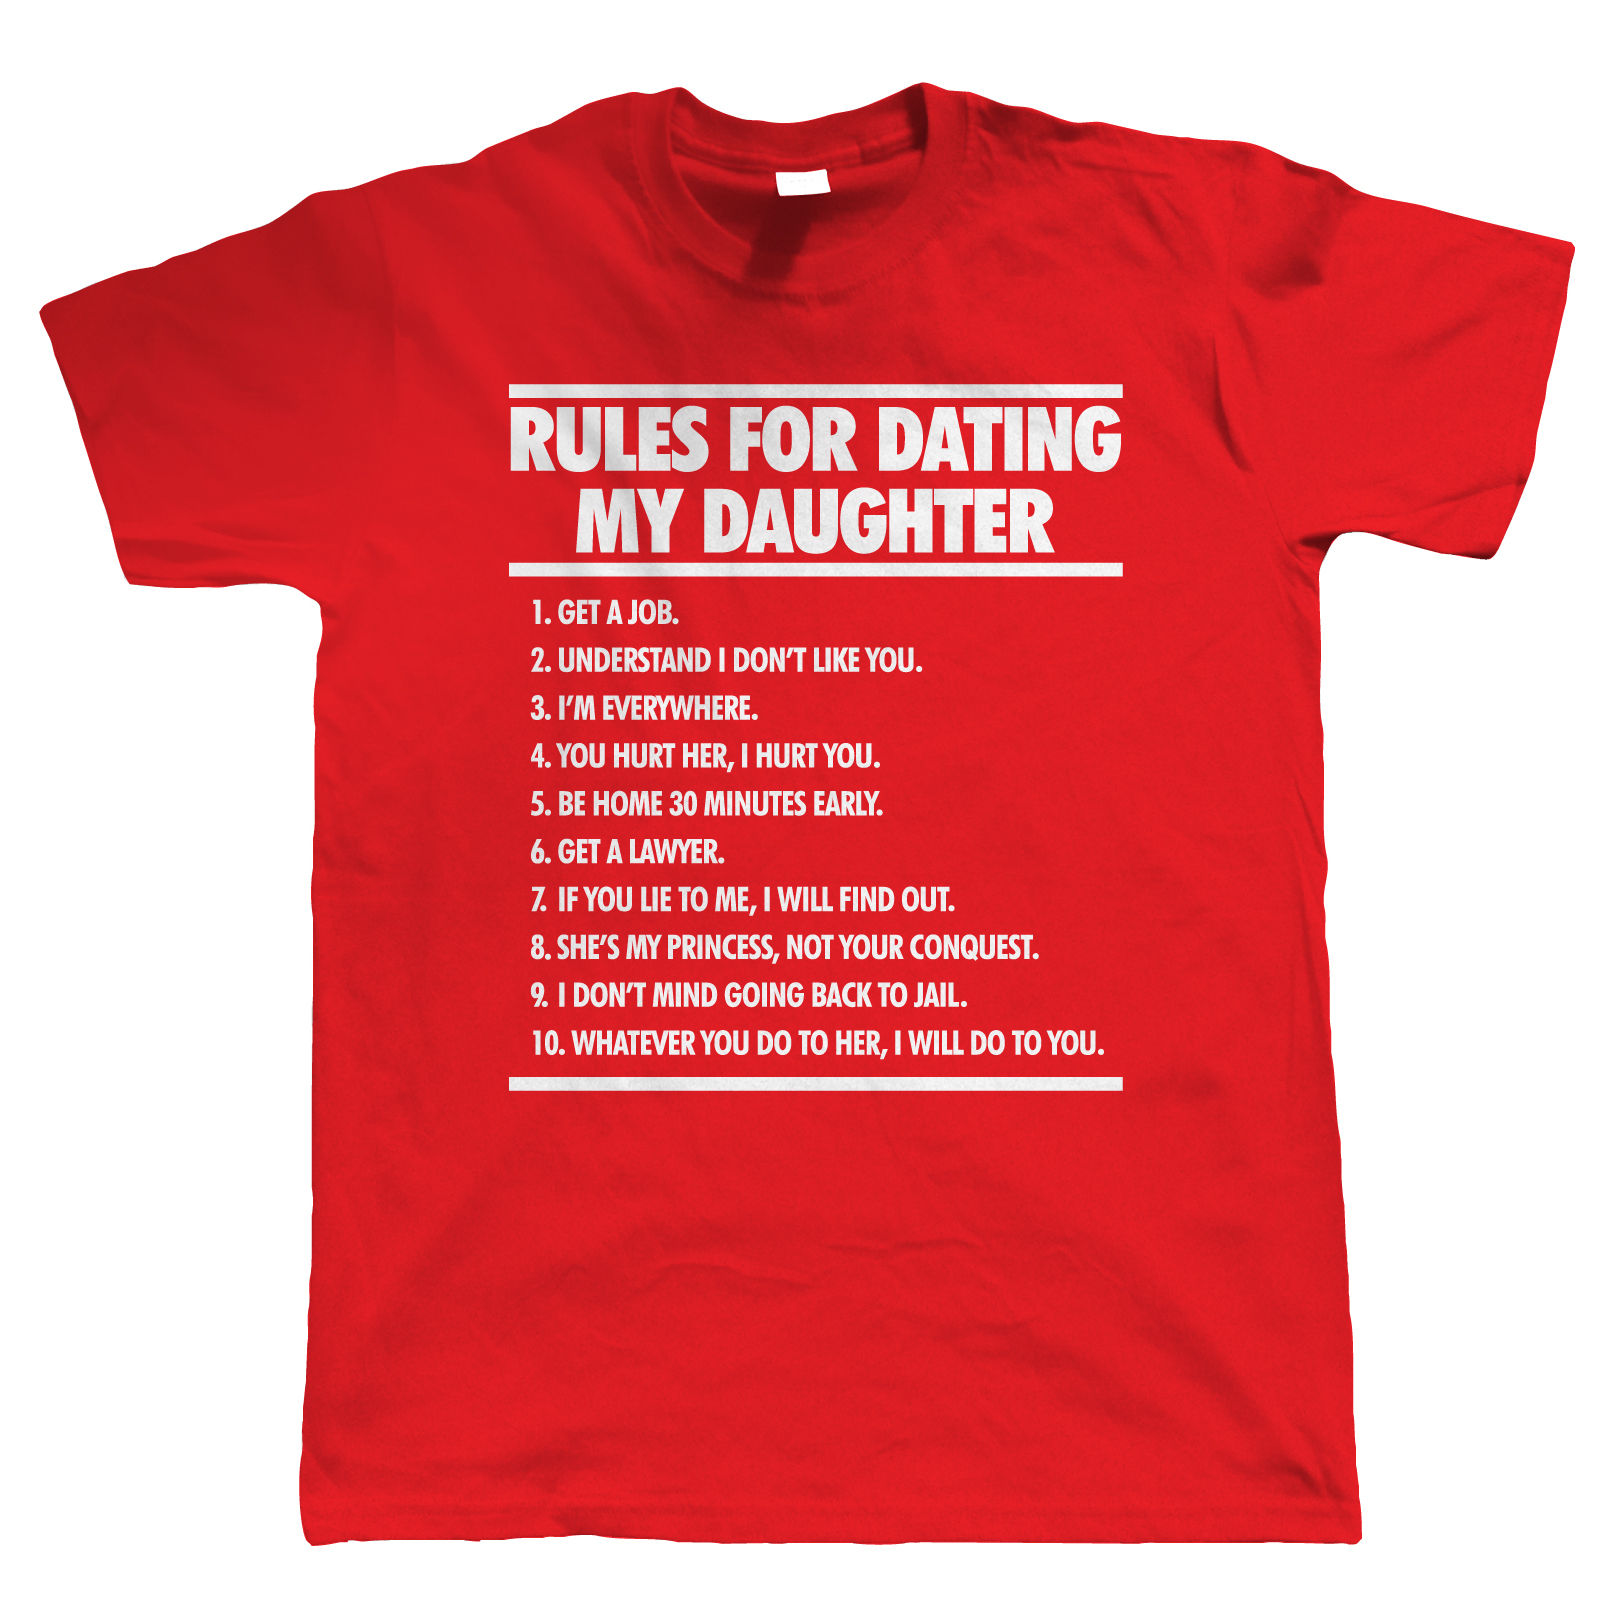 capitalization of mom and dad rules for dating